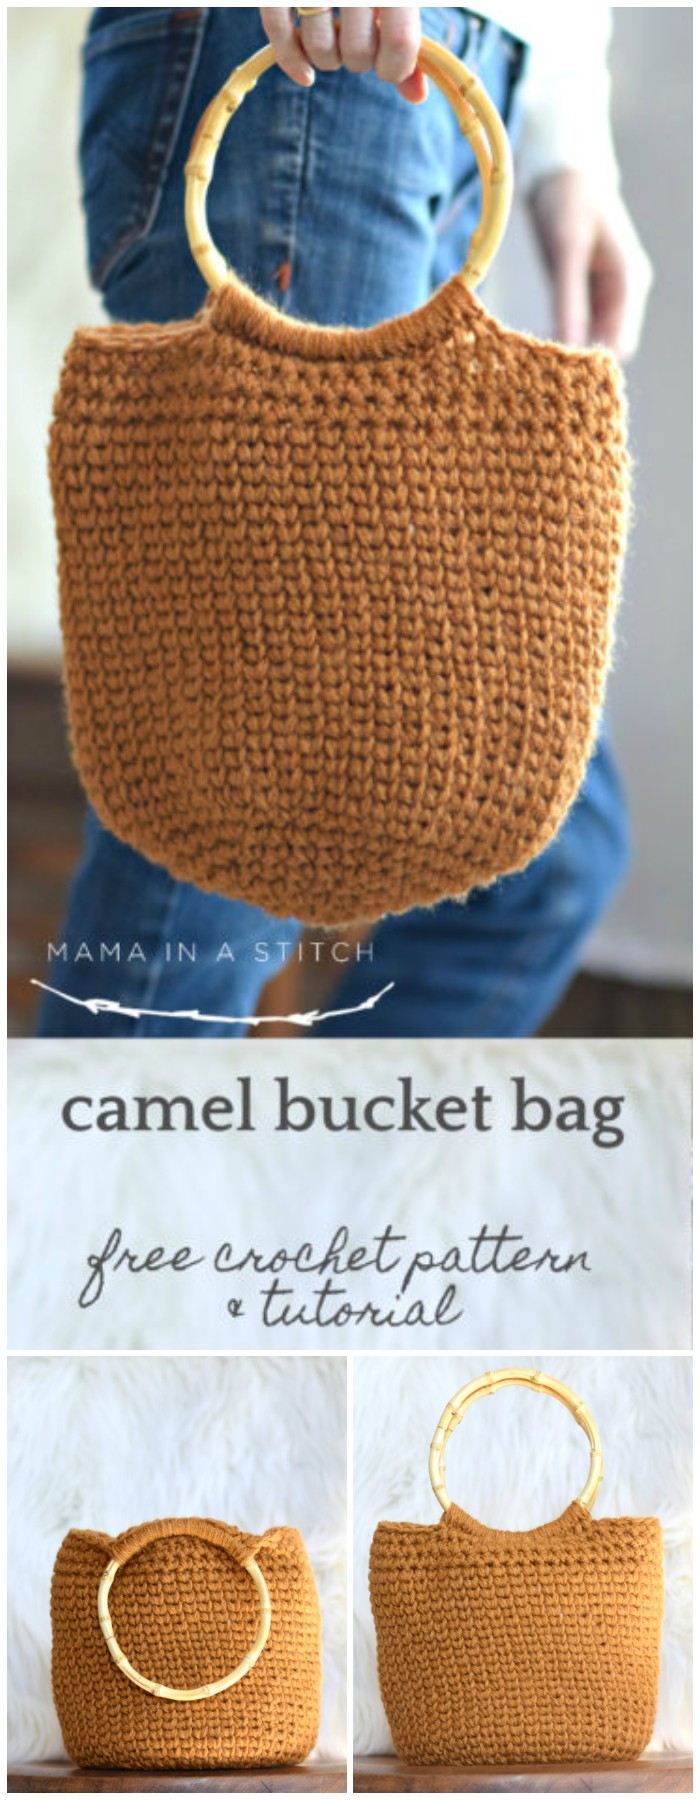 camel bucket bag crocheted bag pattern